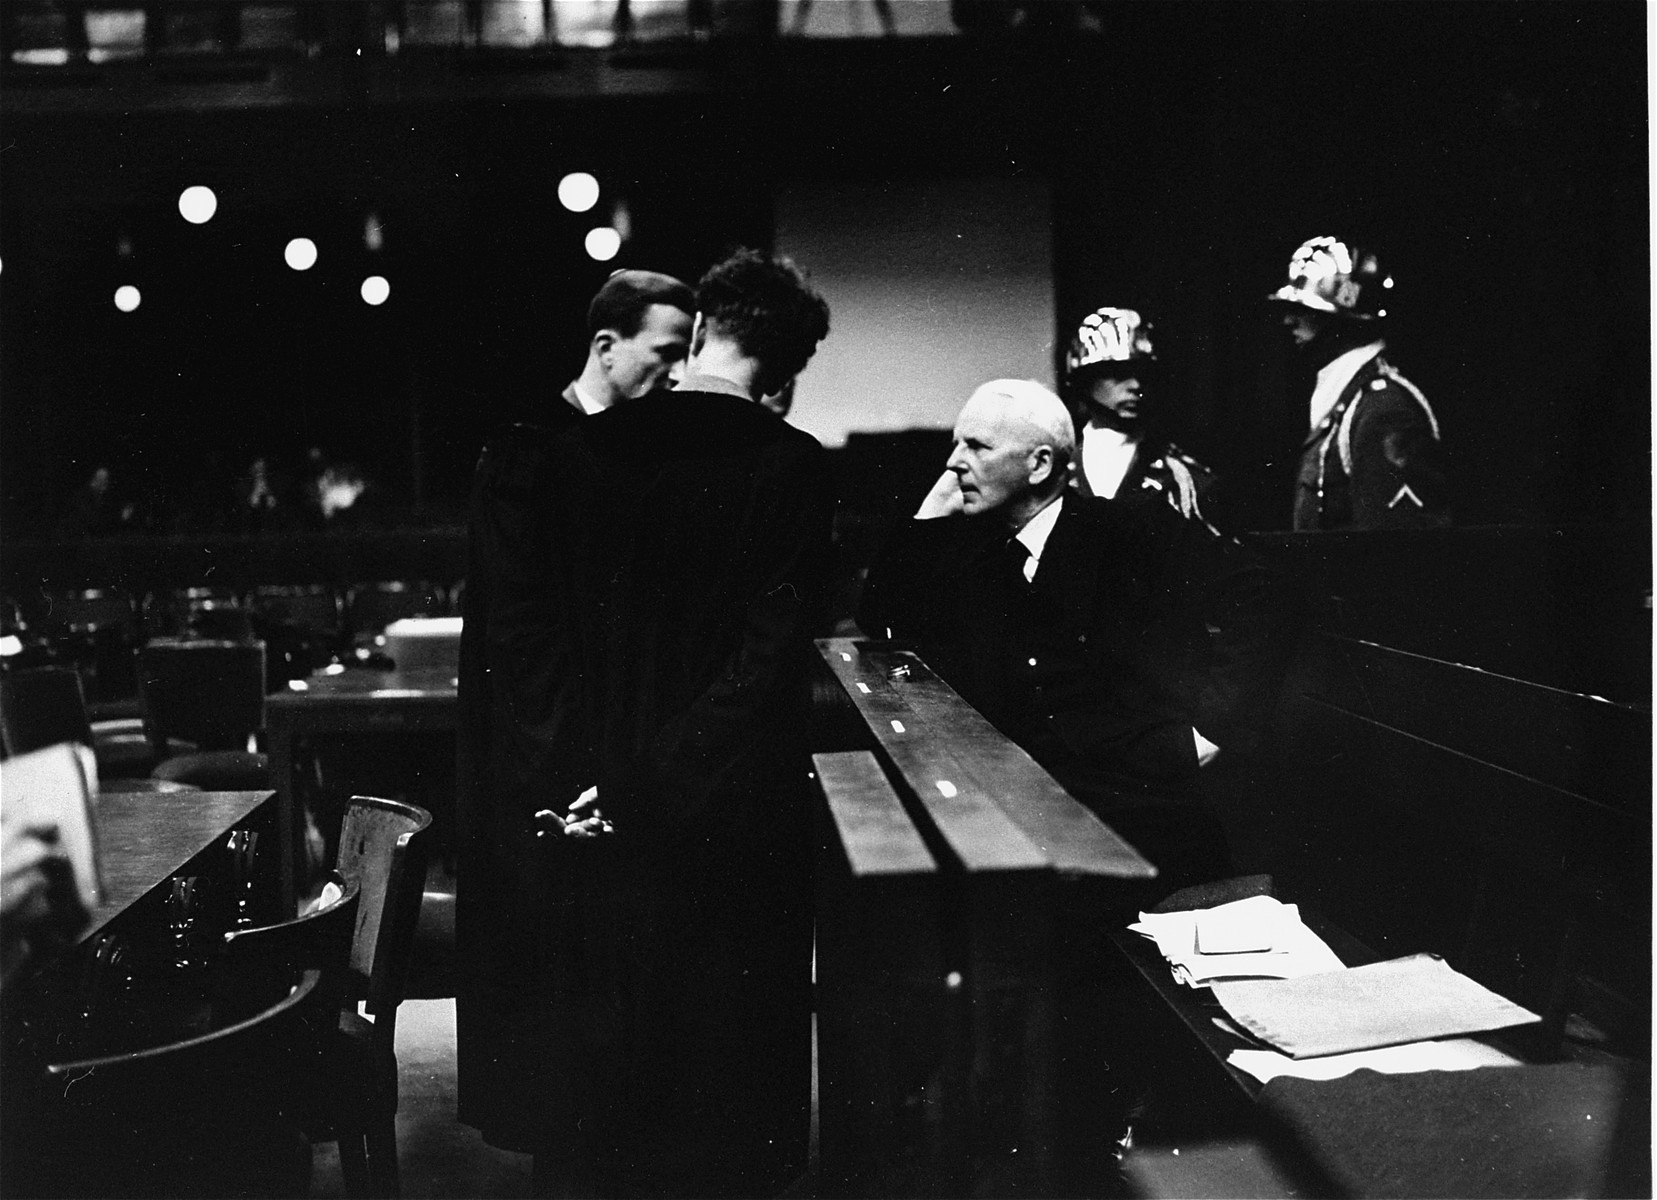 Ernst von Weizsaecker, former State Secretary in the German Foreign Office and last German Ambassador to the Vatican, speaks with his son Richard, acting as his co-defense counsel, and Dr. Harmut Becker, Weiszacker's main counsel, during the Ministries Trial.